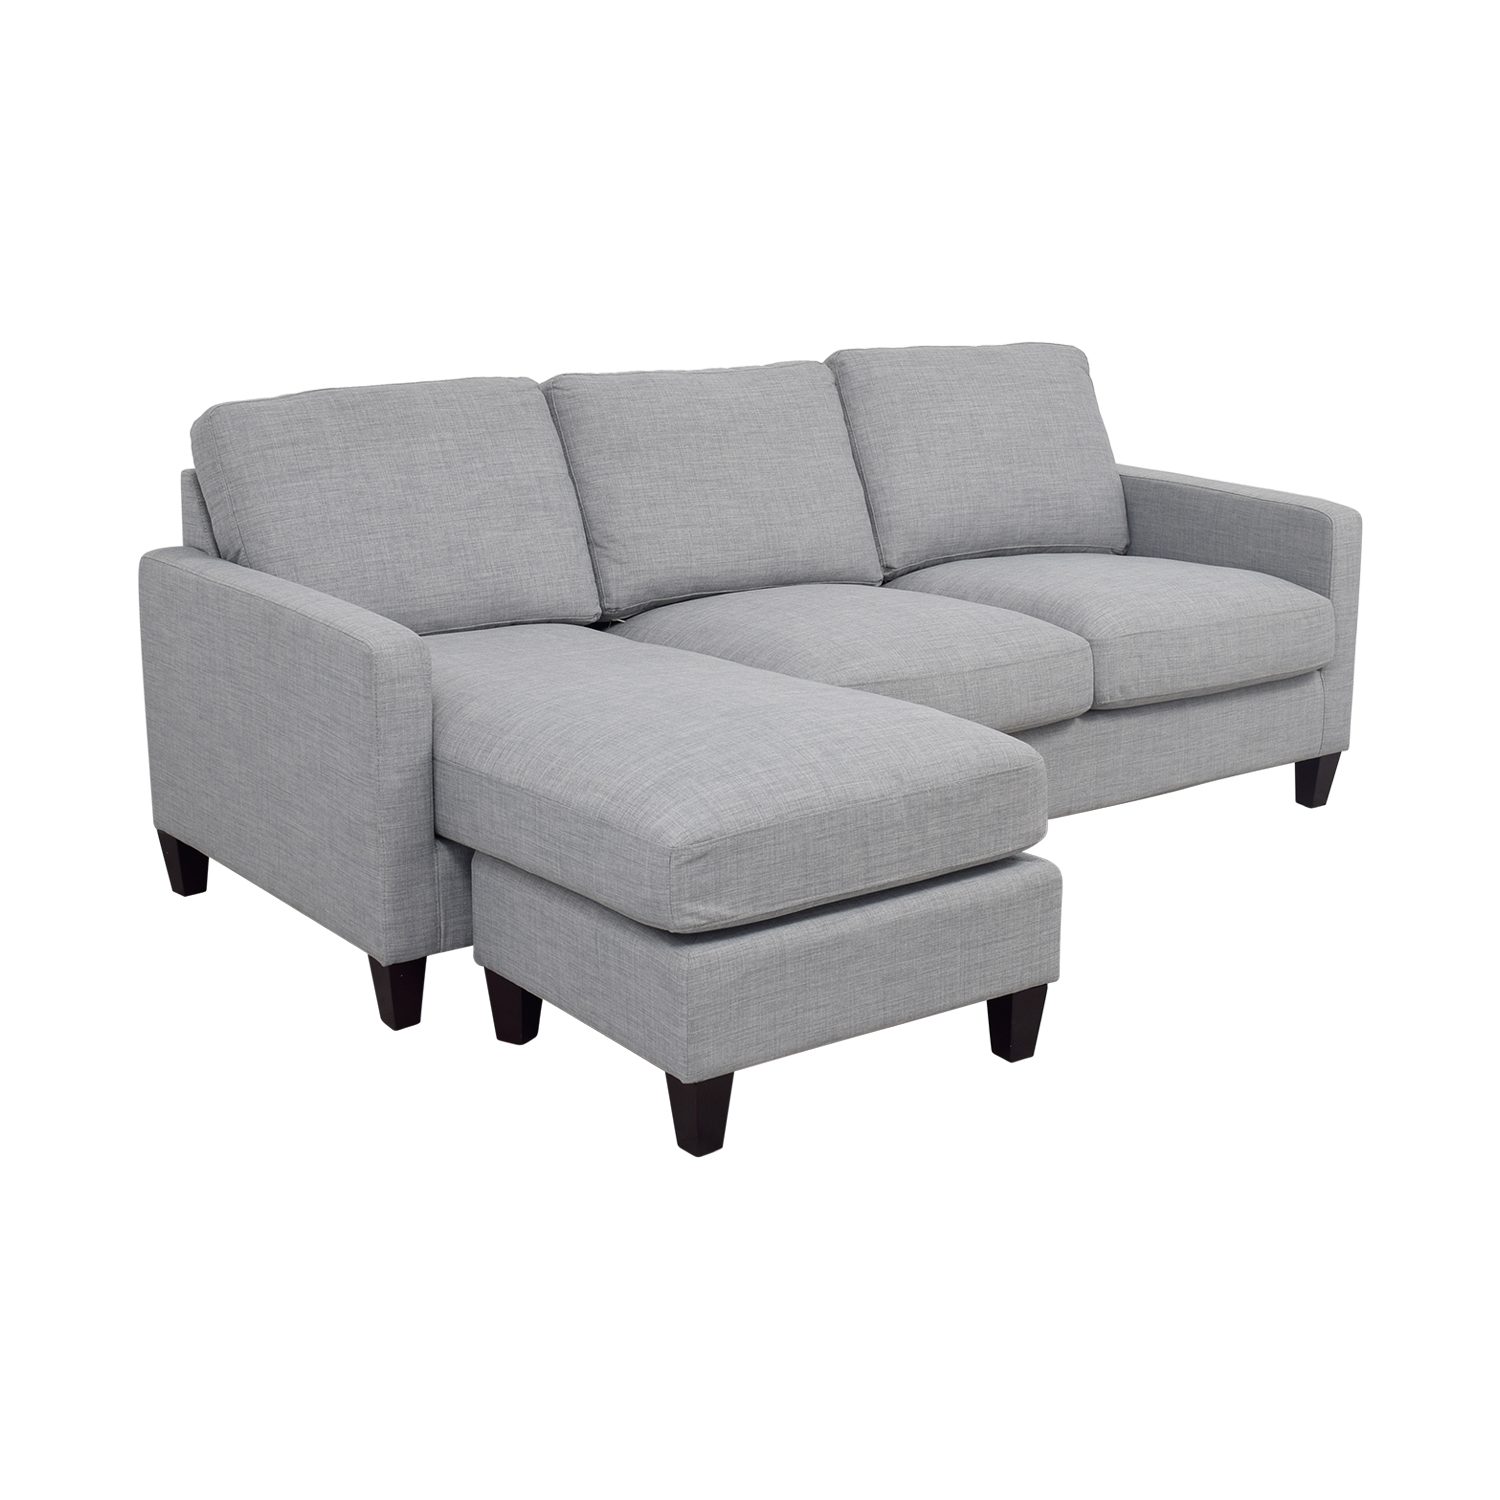 41 Off World Market Light Grey Chaise Sectional Sofas